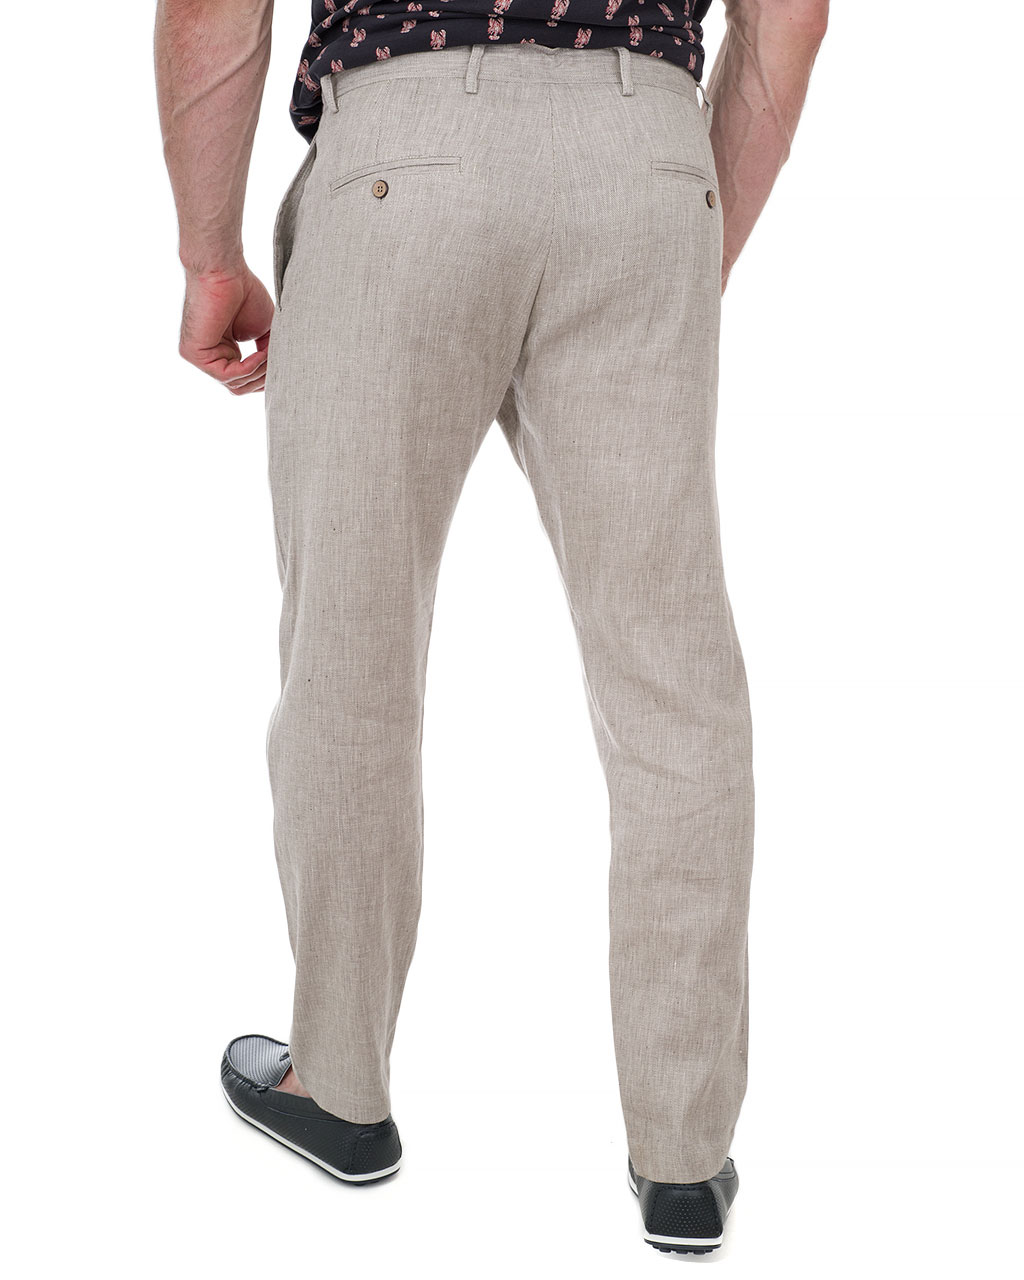 Men's trousers 2BPA113-SND/91 (5)